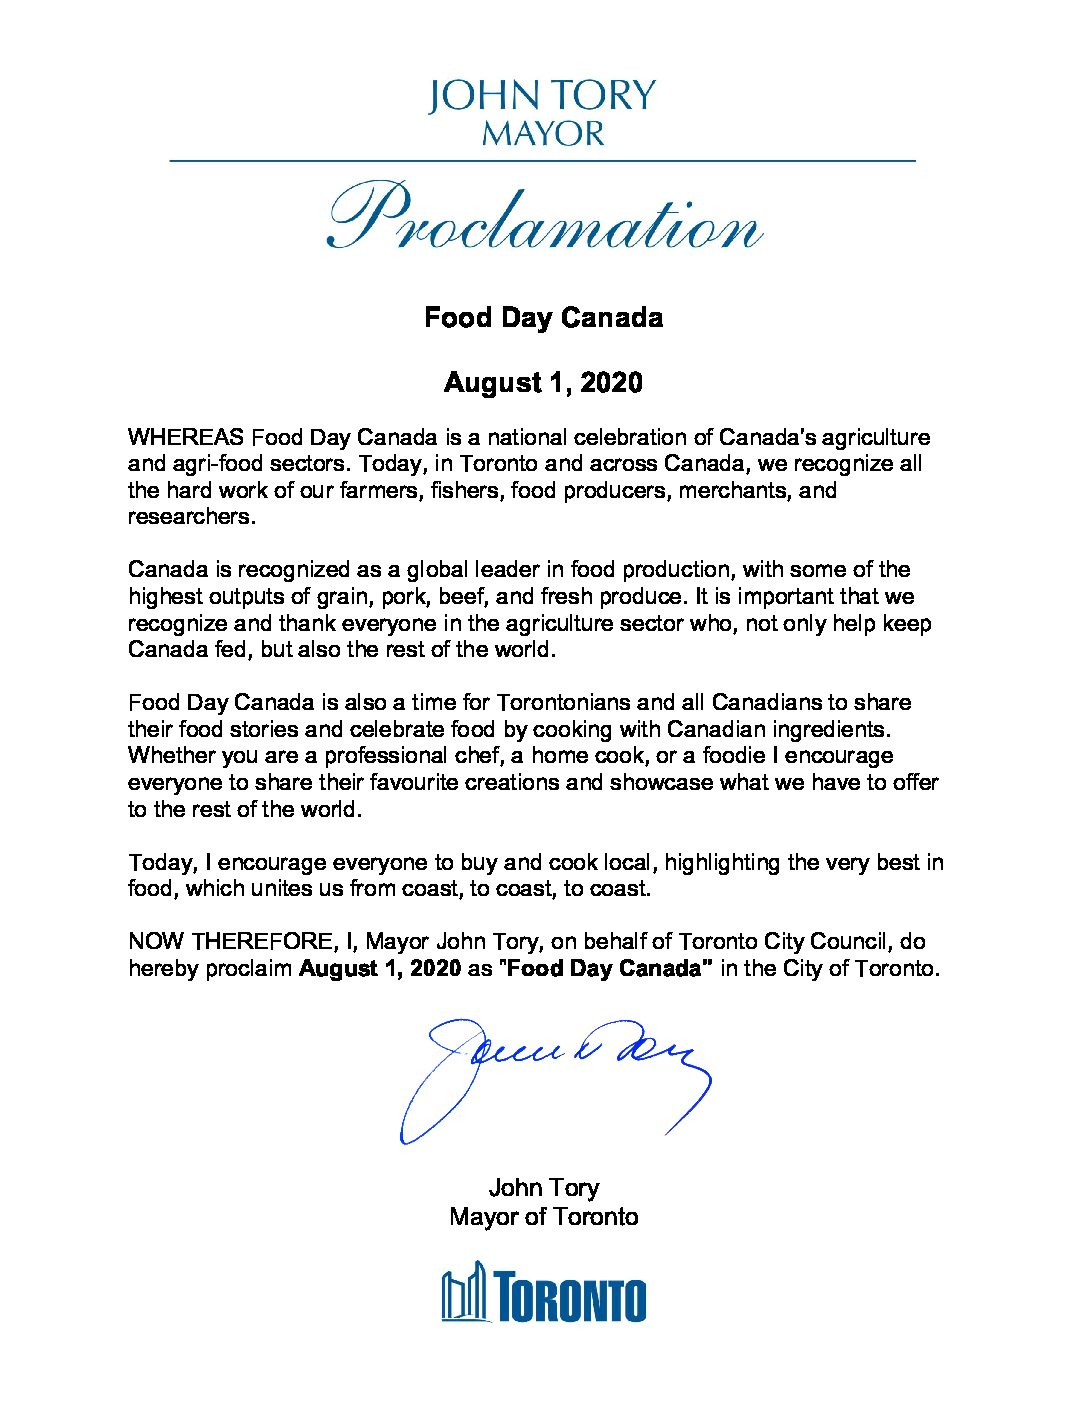 Canada's Largest City Proclaims August 1st as Food Day Canada